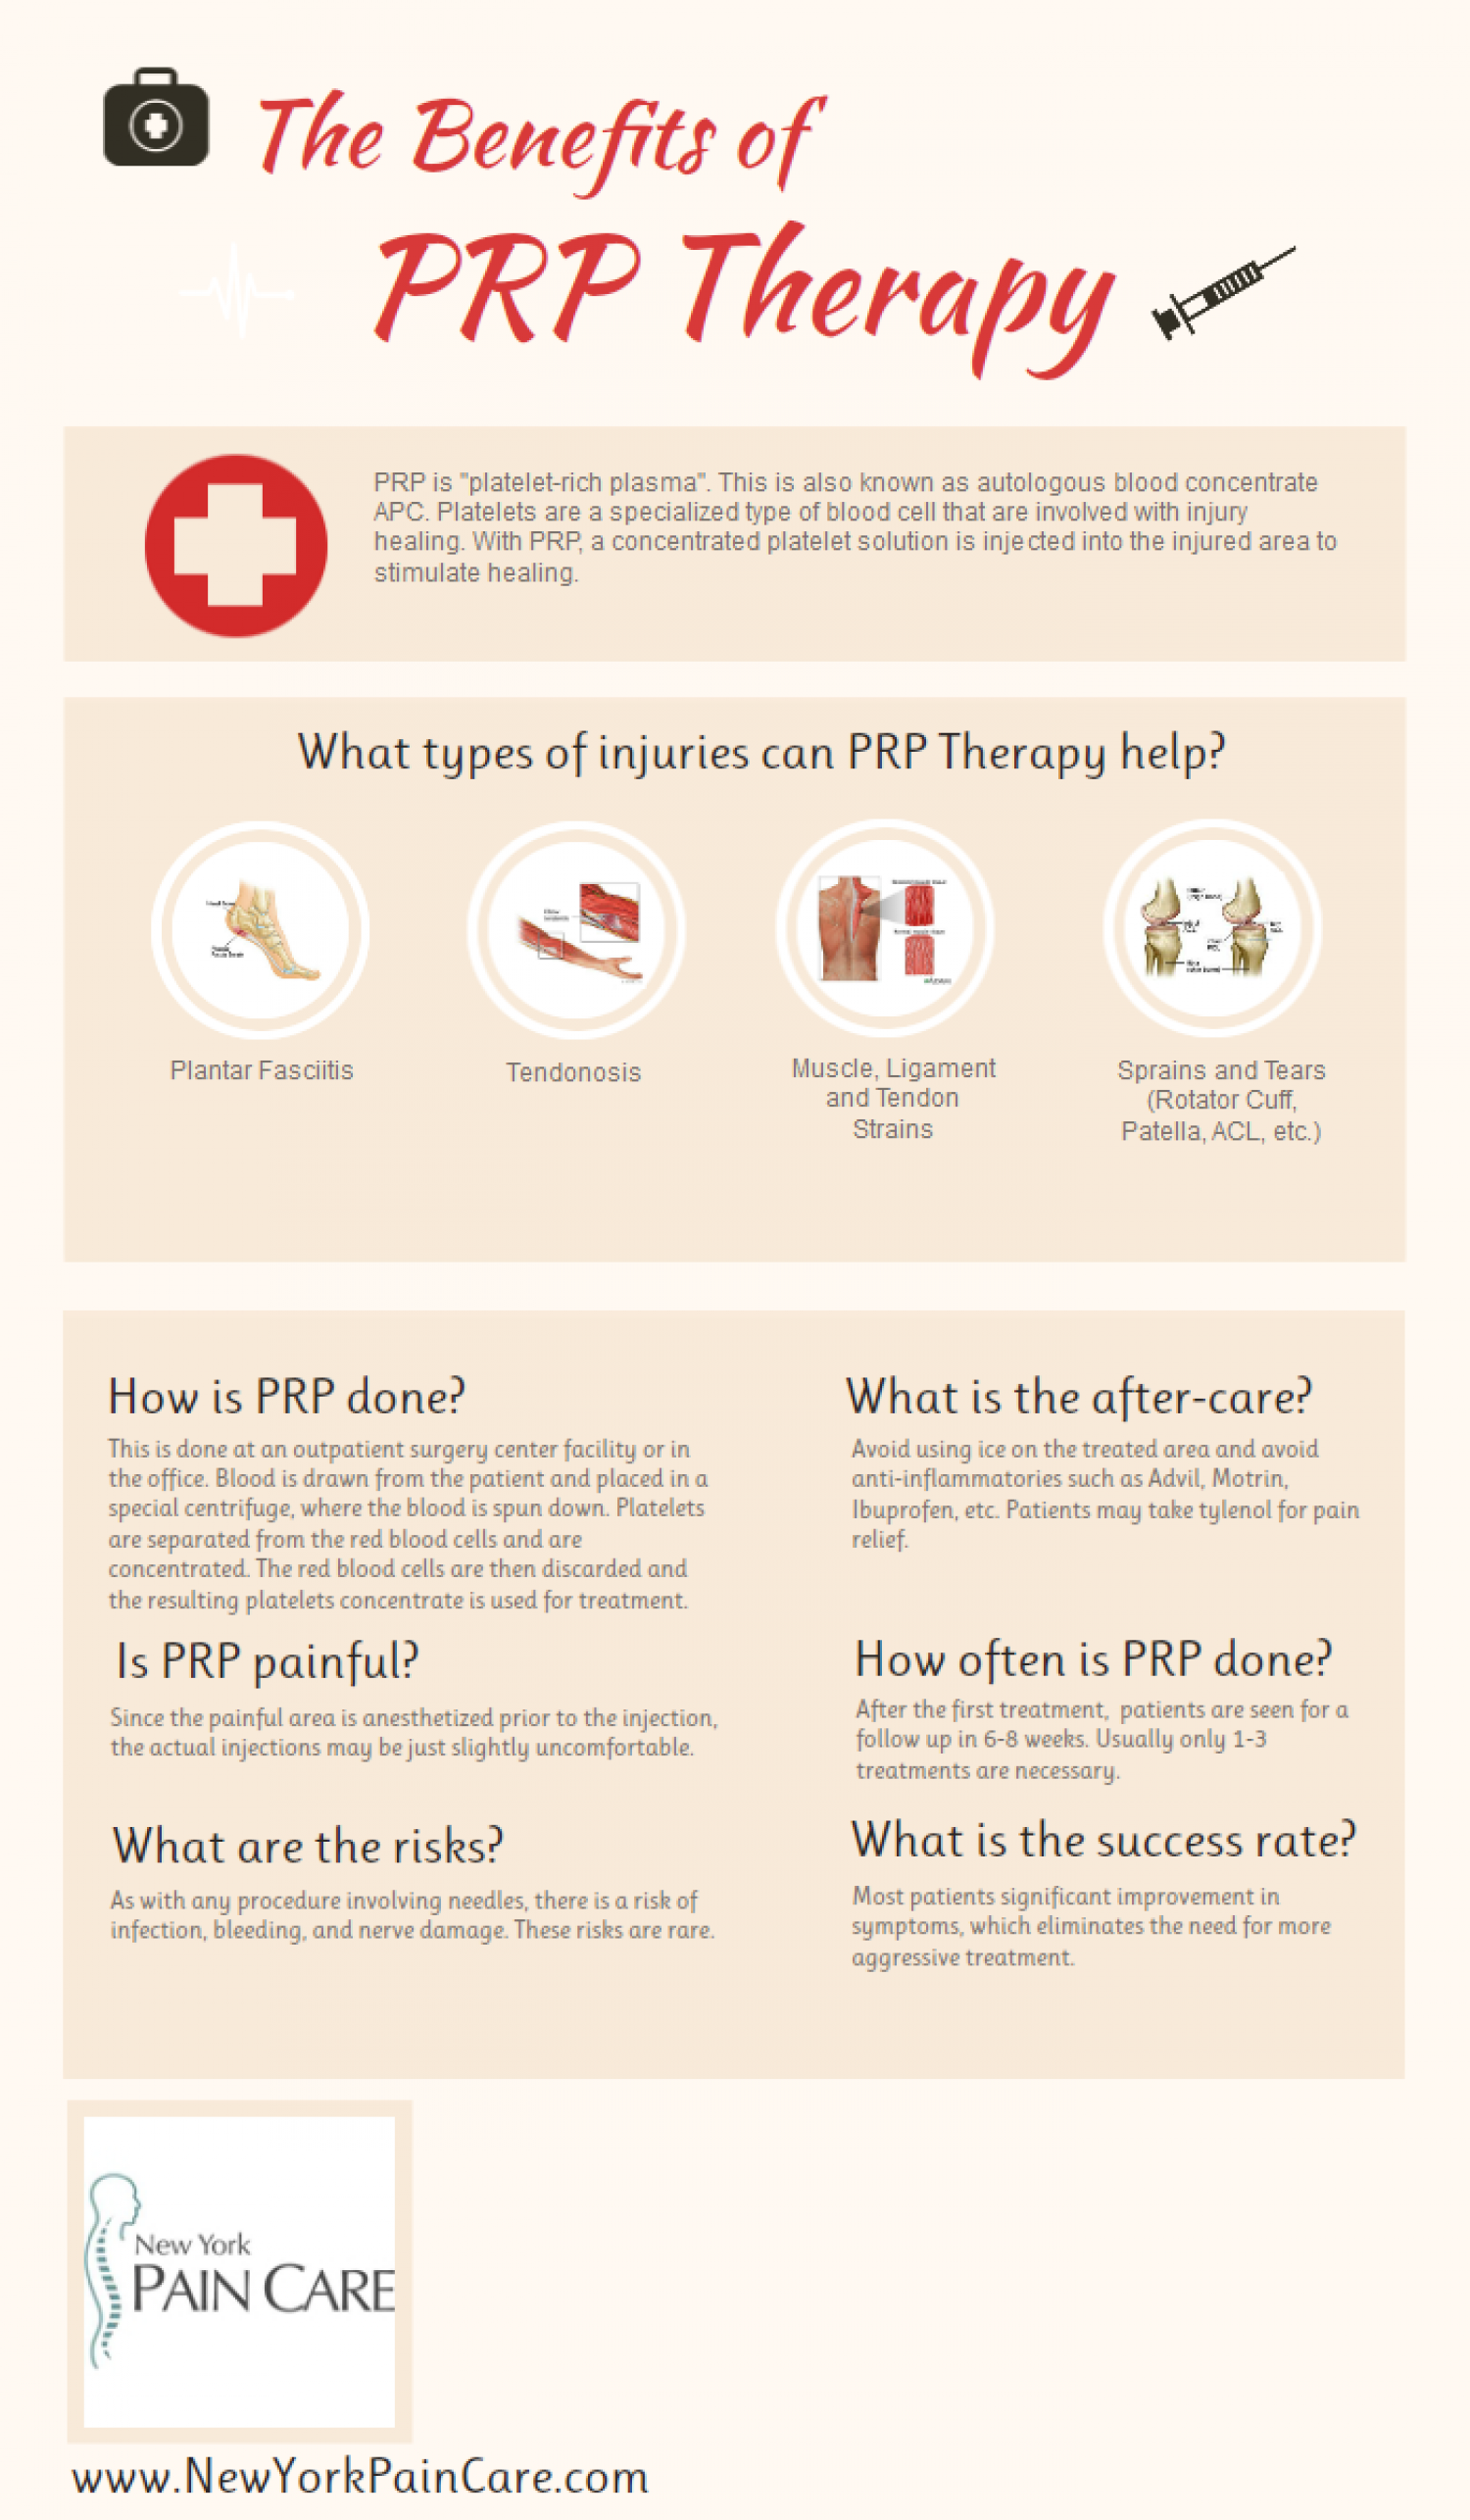 The Benefits of PRP Therapy Infographic